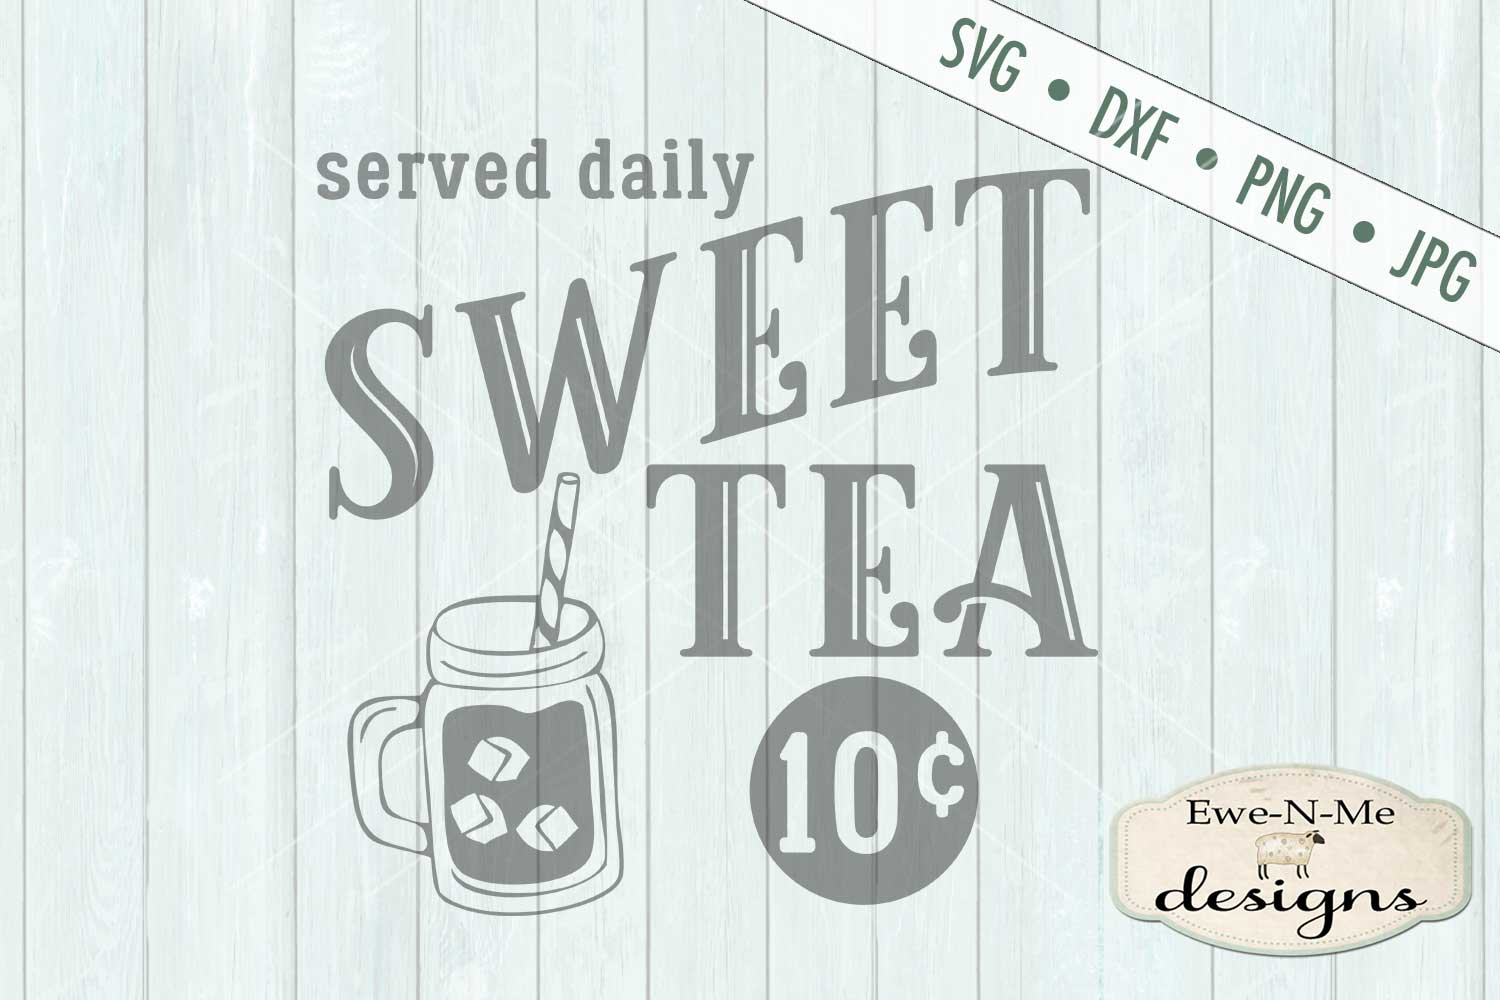 Sweet Tea Served Daily SVG DXF Files example image 2